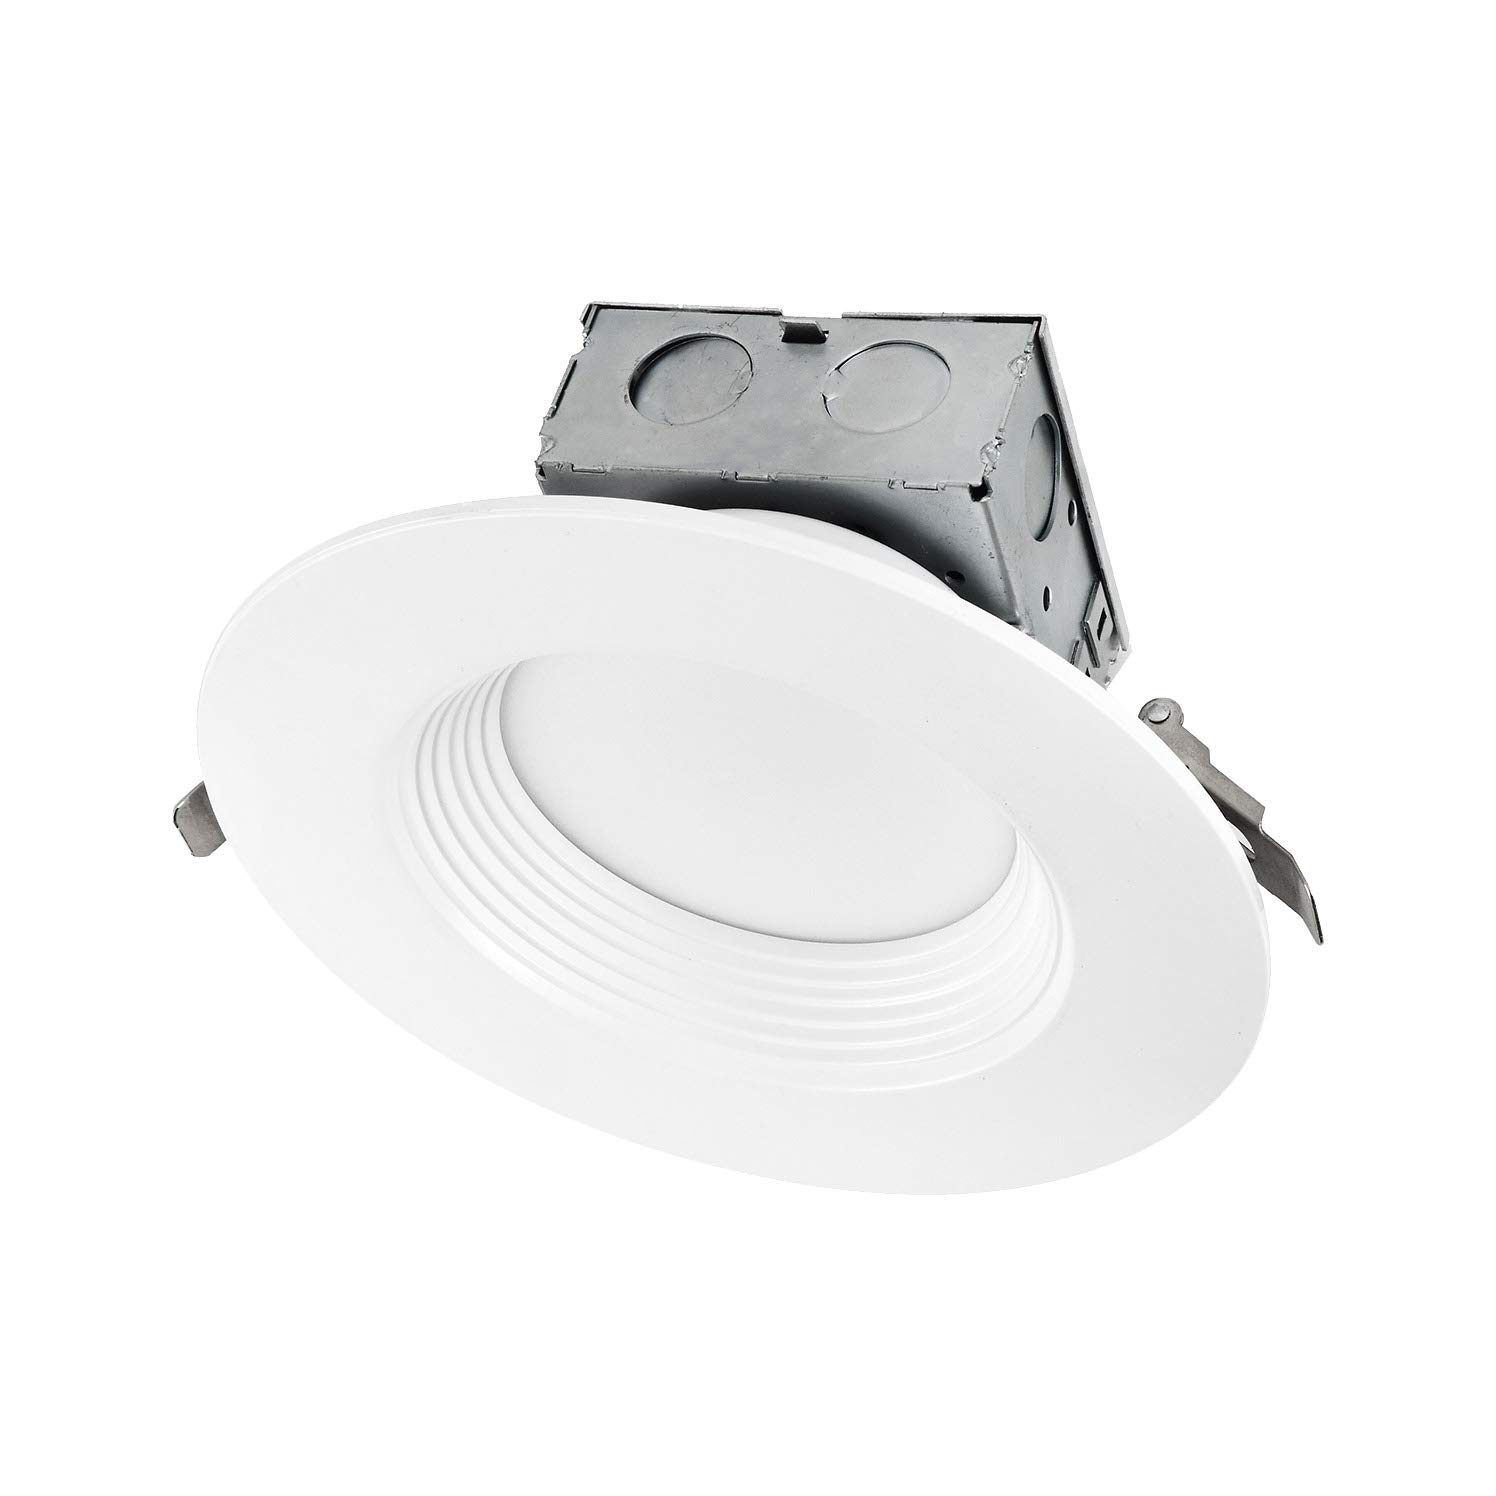 OSTWIN 6 Inch Round LED Recessed Ceiling Light Fixture, Dimmable, Downlighter Junction Box, IC Rated, 15W (120 Watt Replacement) 3000K, 1100Lm, No Can Needed, ETL and Energy Star Listed